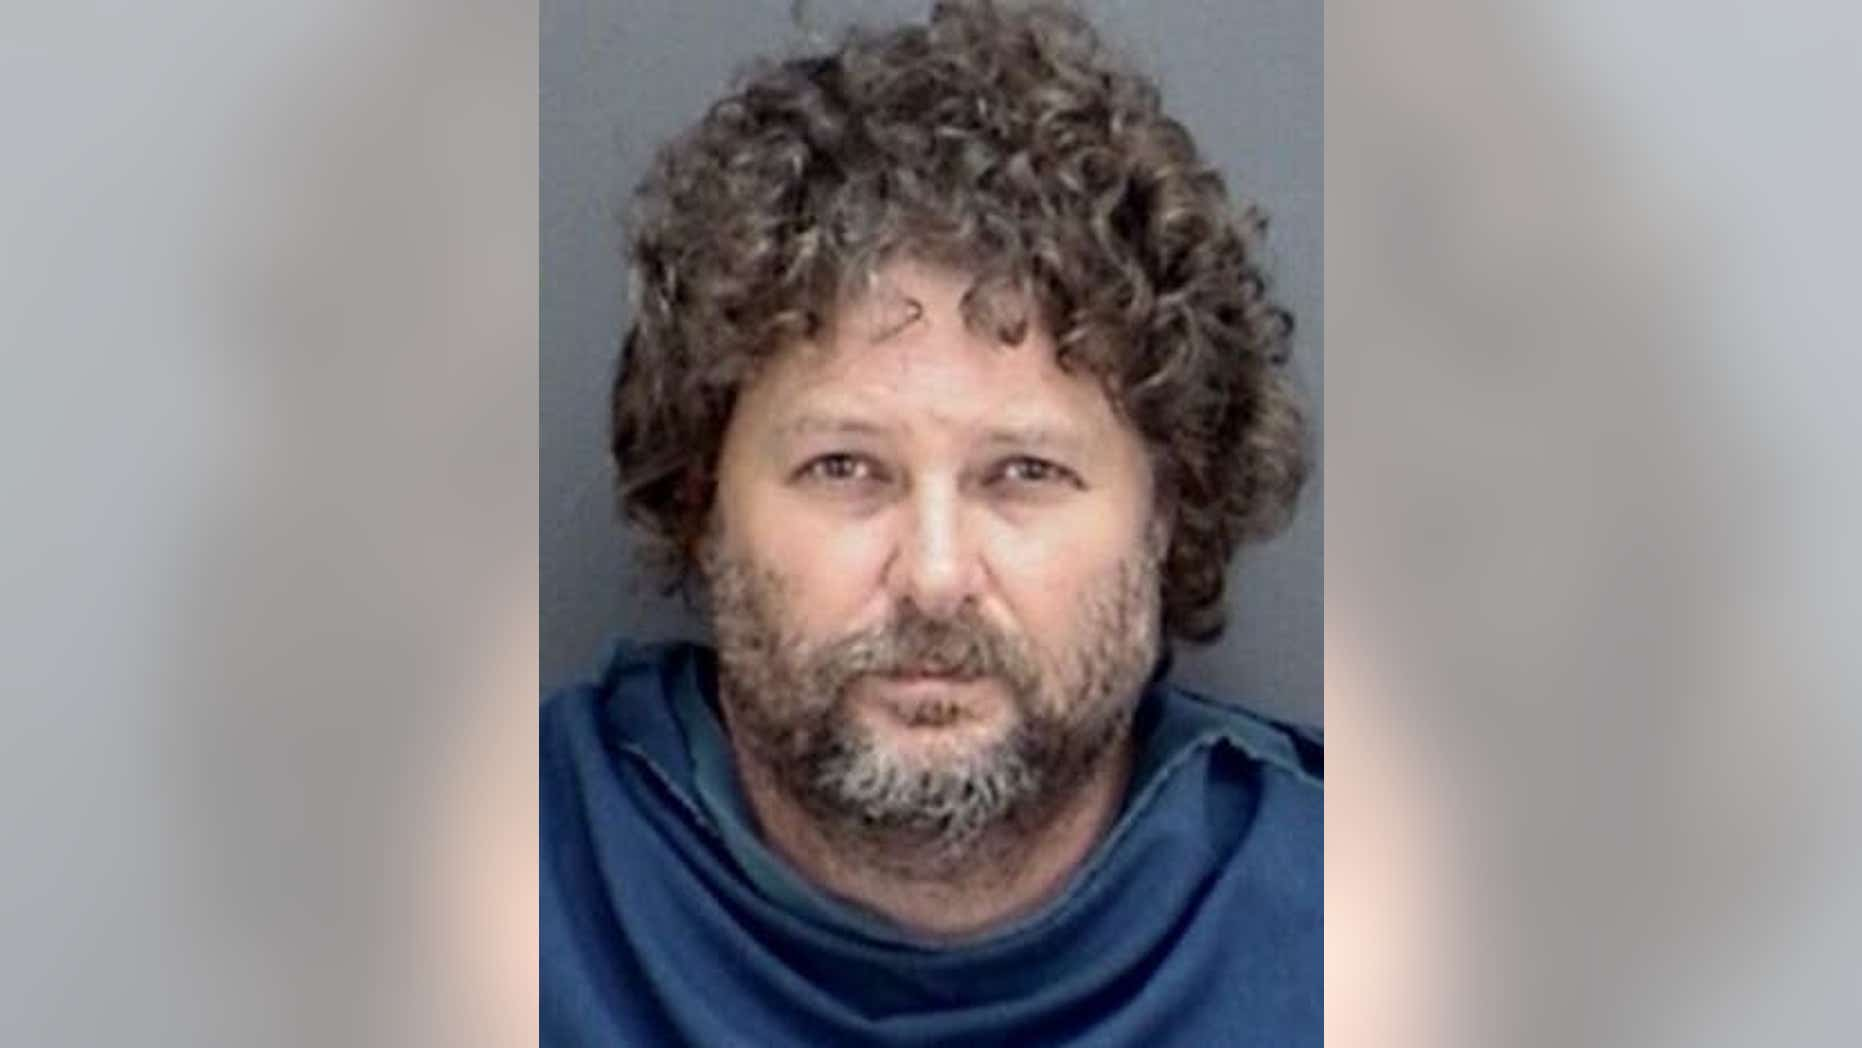 Jason Wayne Carlile, 47, is a convicted sex offender and faces a new charge of allegedly raping a 14-year-old boy.